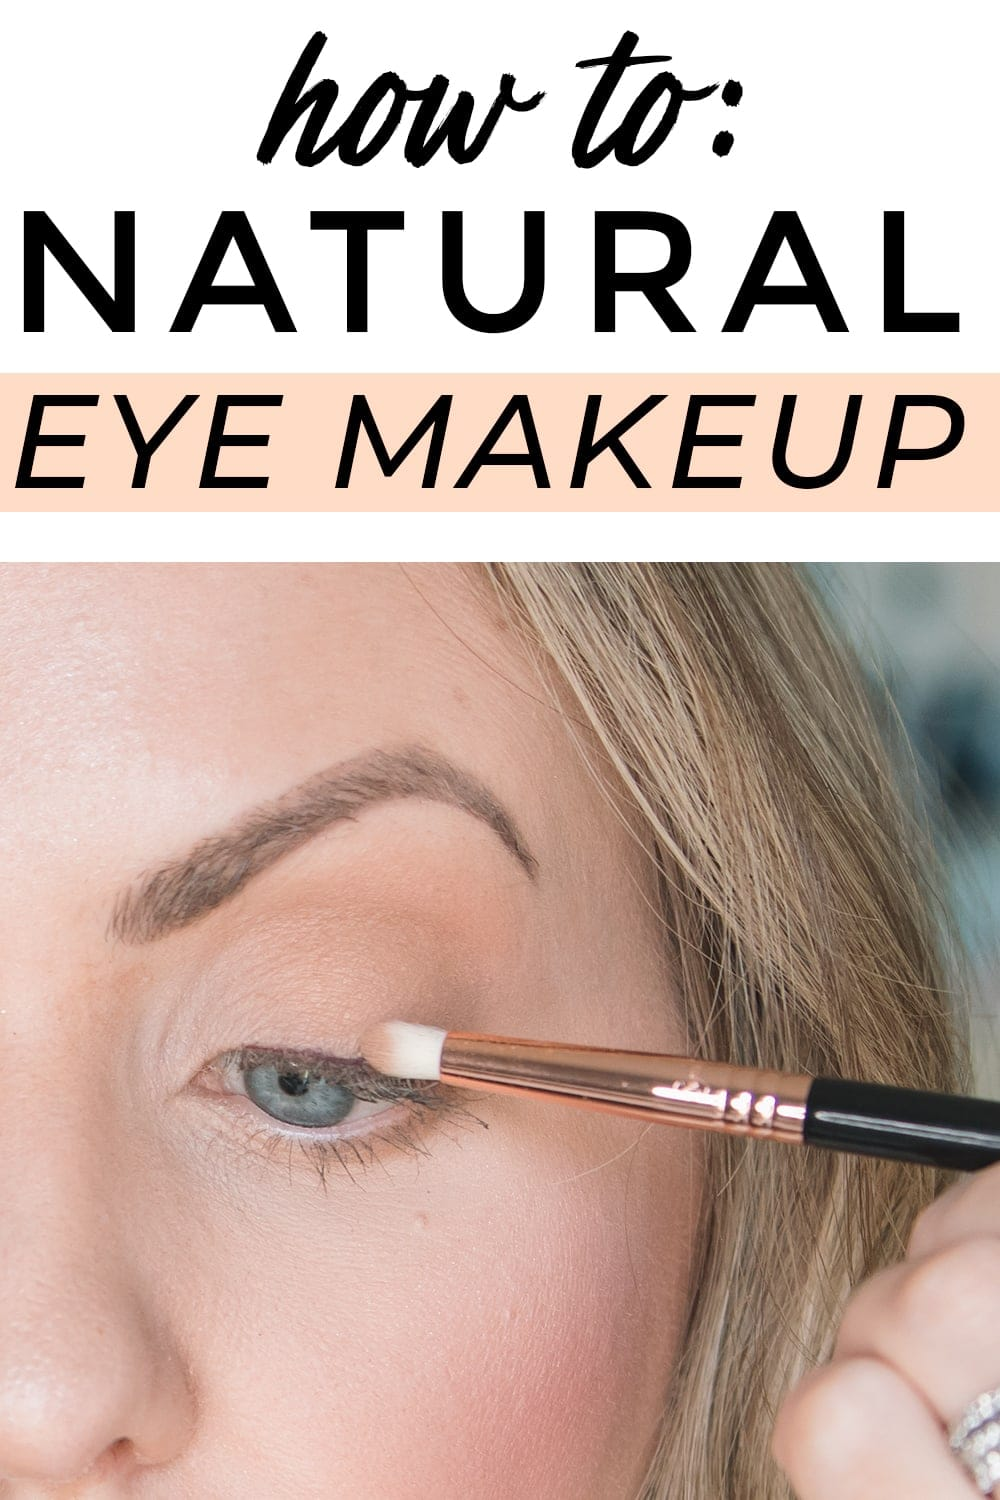 Houston beauty blogger Meg O. on the Go shares a natural eye makeup tutorial